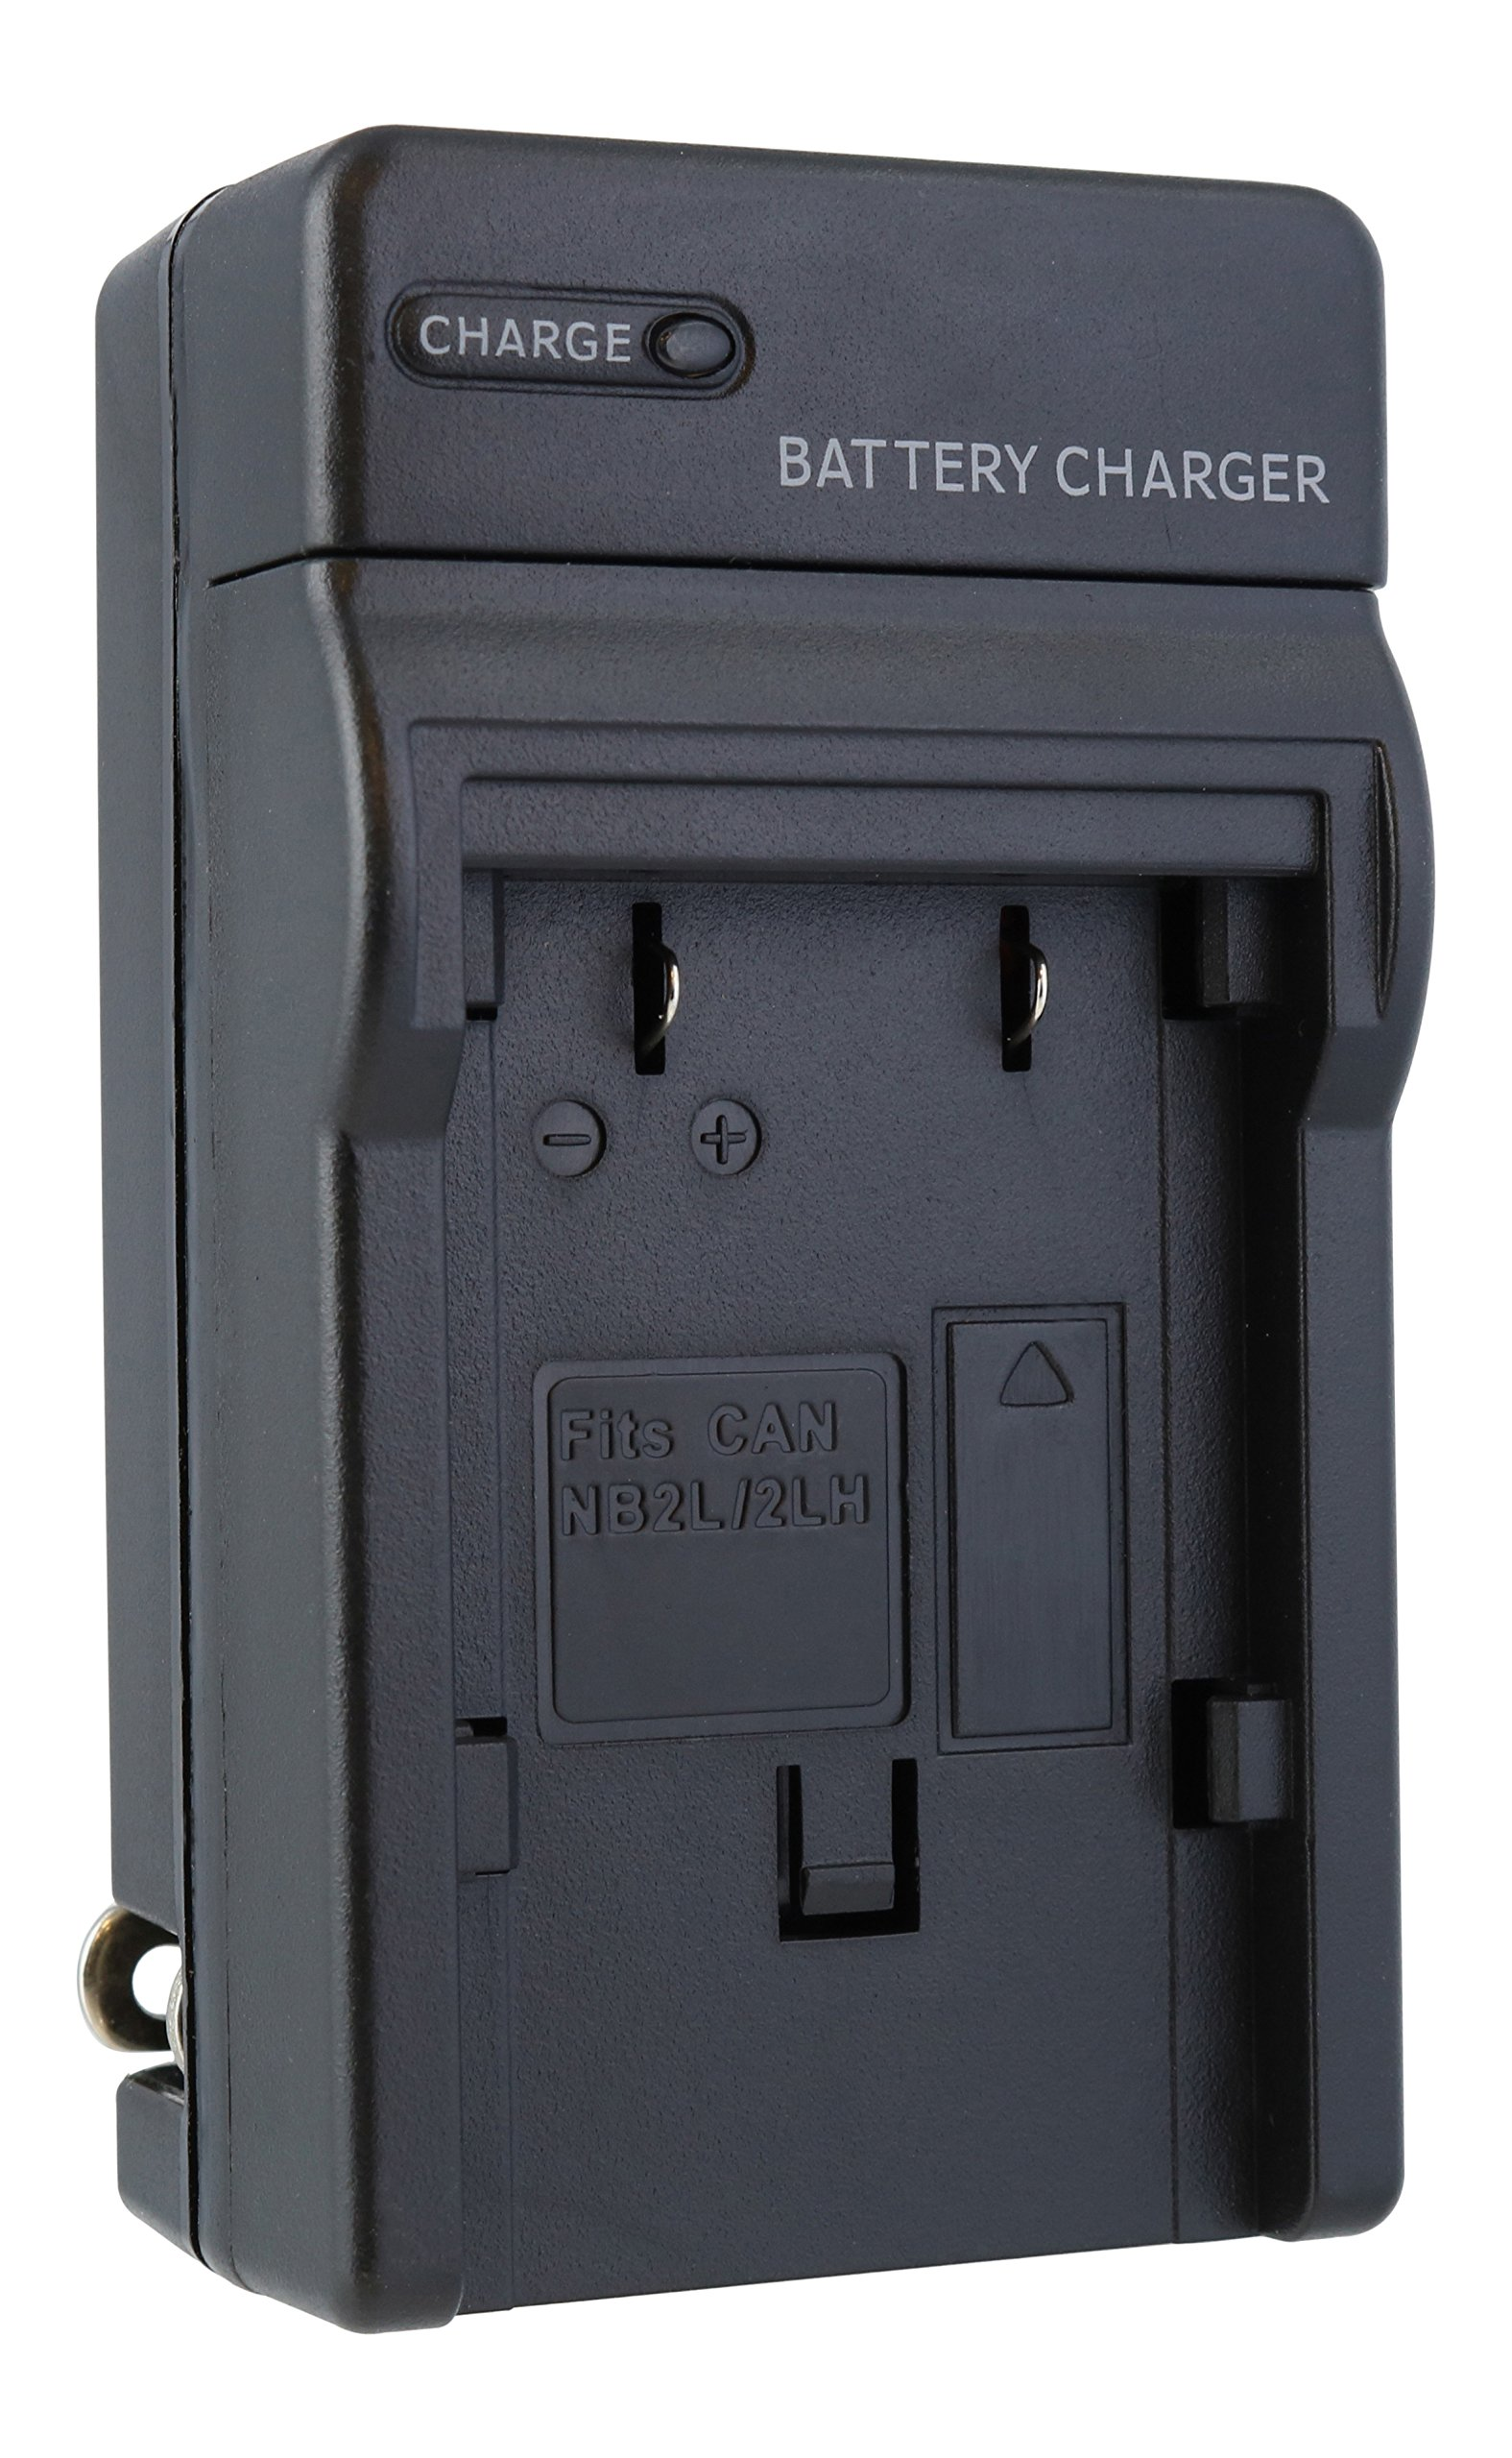 TechFuel Battery Charger Kit for Canon Vixia HV30 Camcorder - For Home, Car and Travel Use